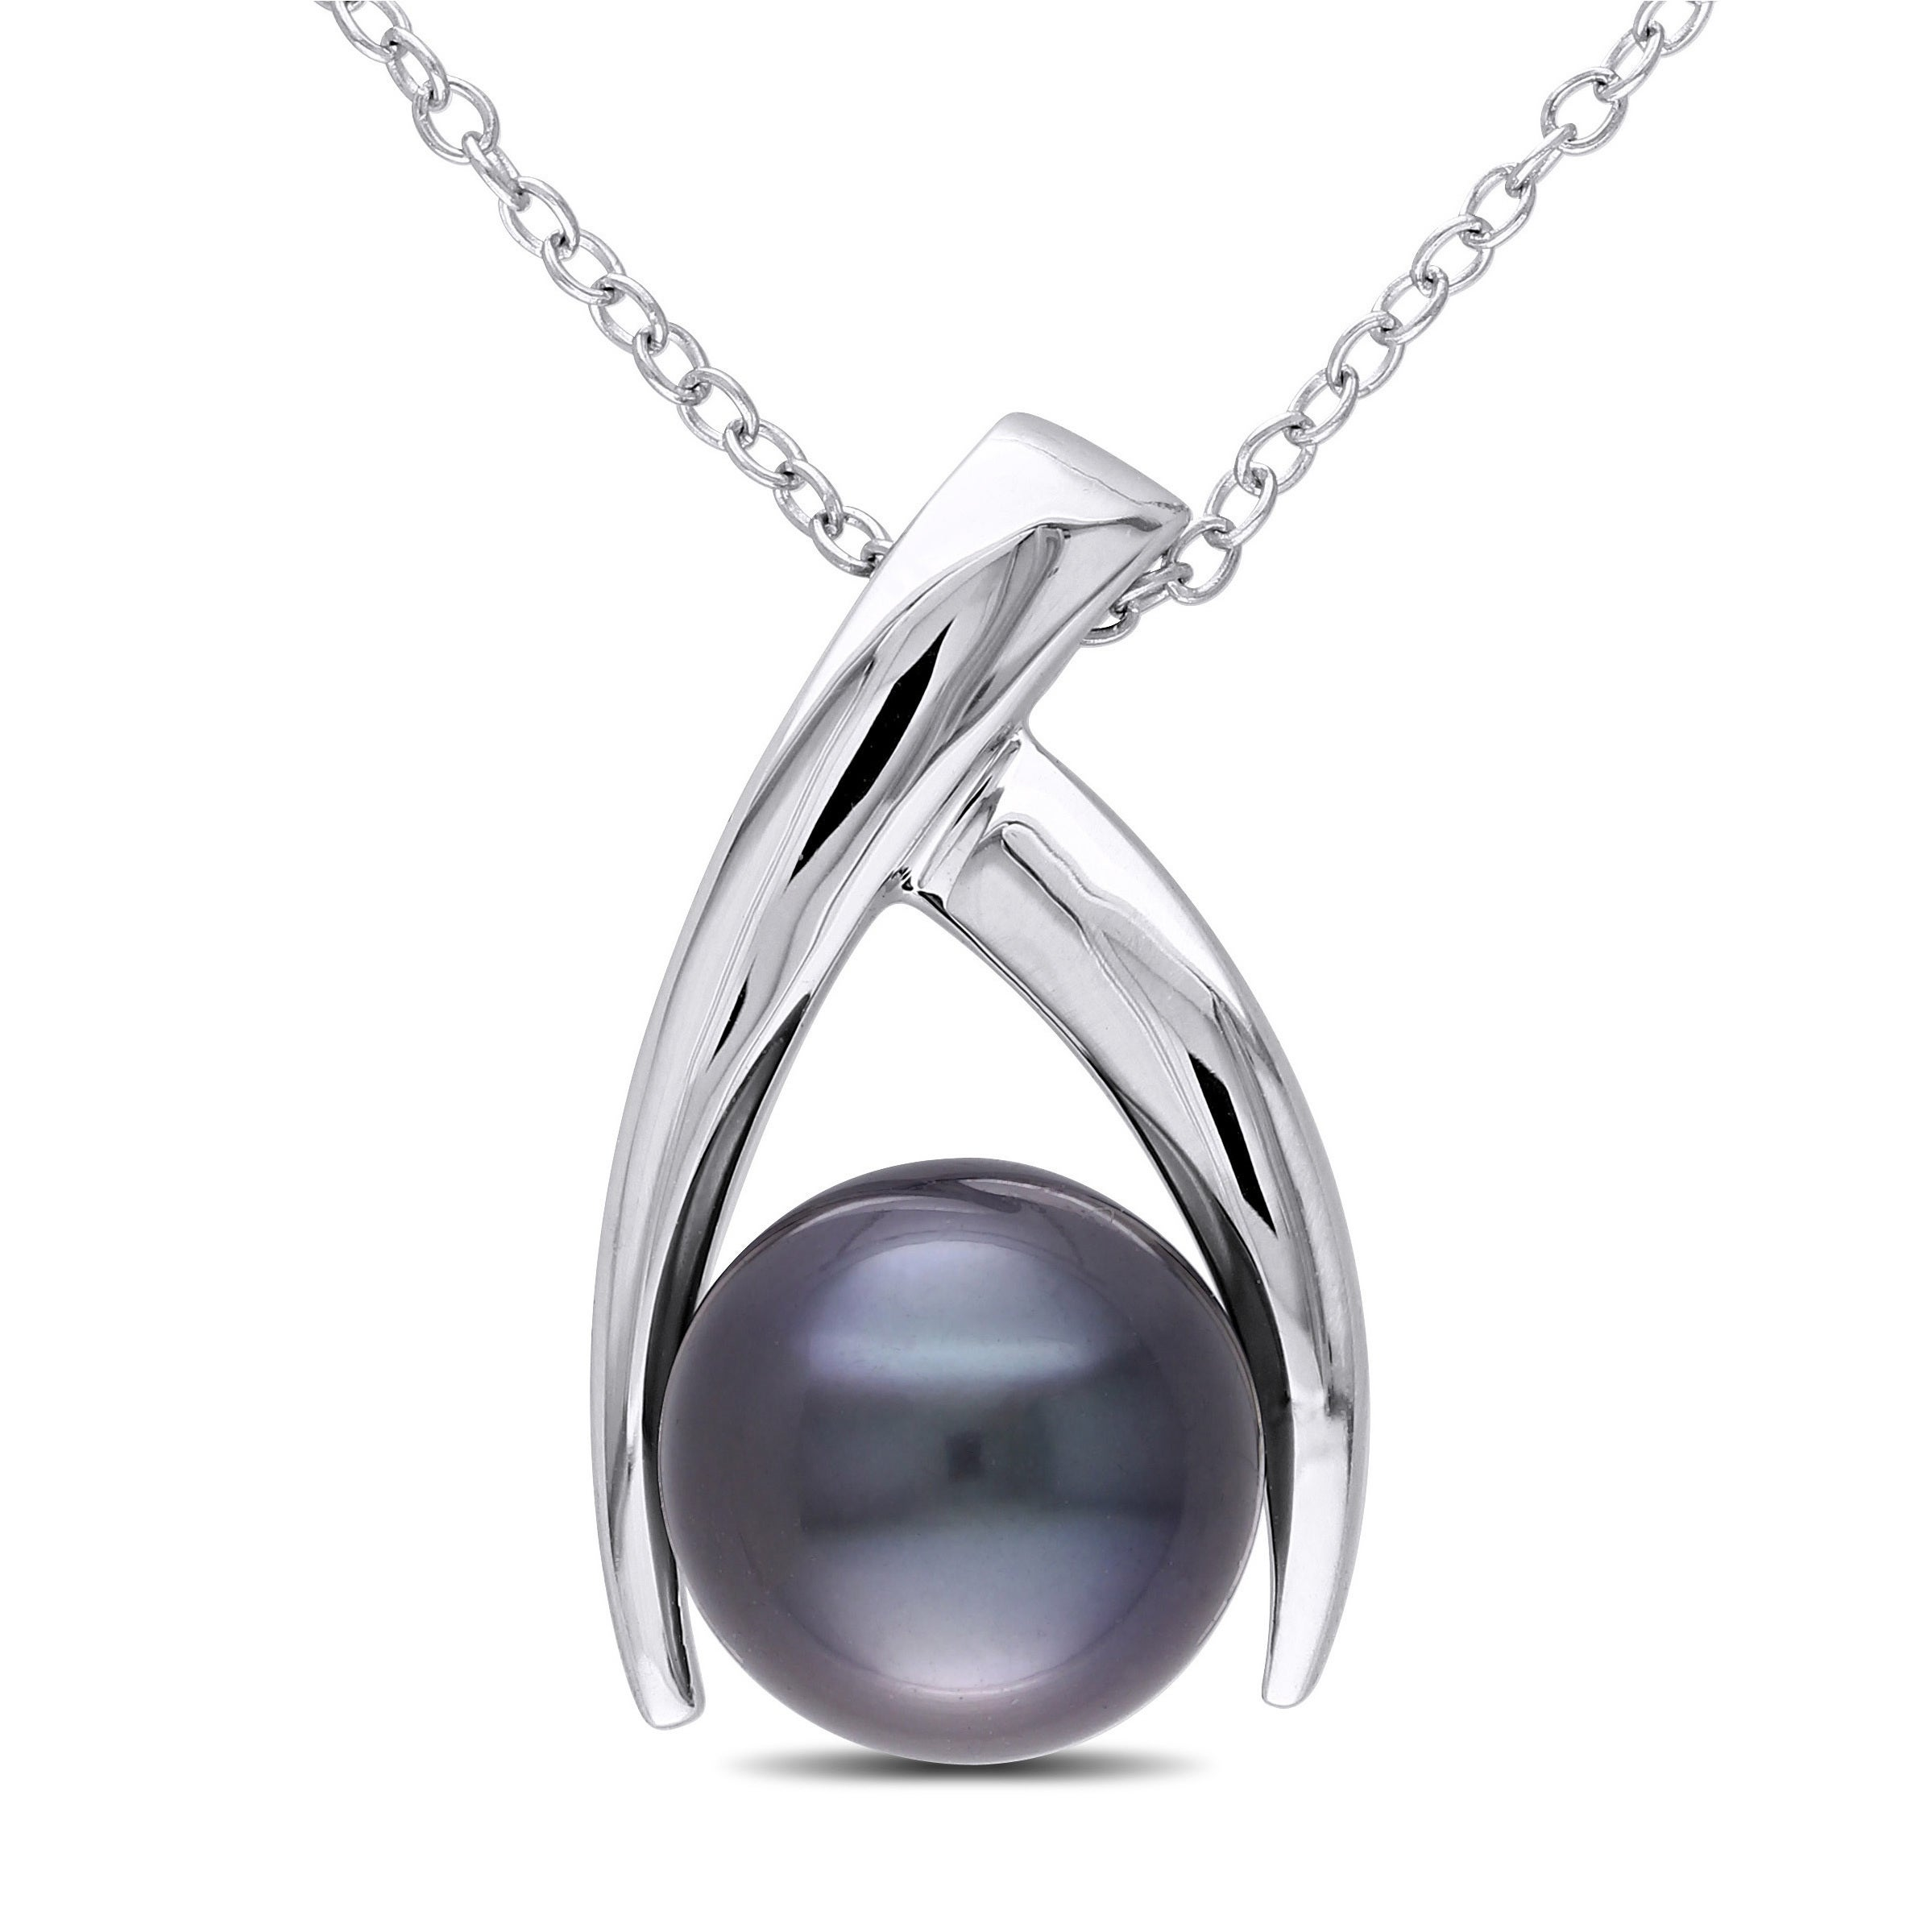 bb0a4a7f7 Shop Miadora Sterling Silver Tahitian Black Pearl Necklace (9.5-10 mm) -  Free Shipping Today - Overstock - 8504363